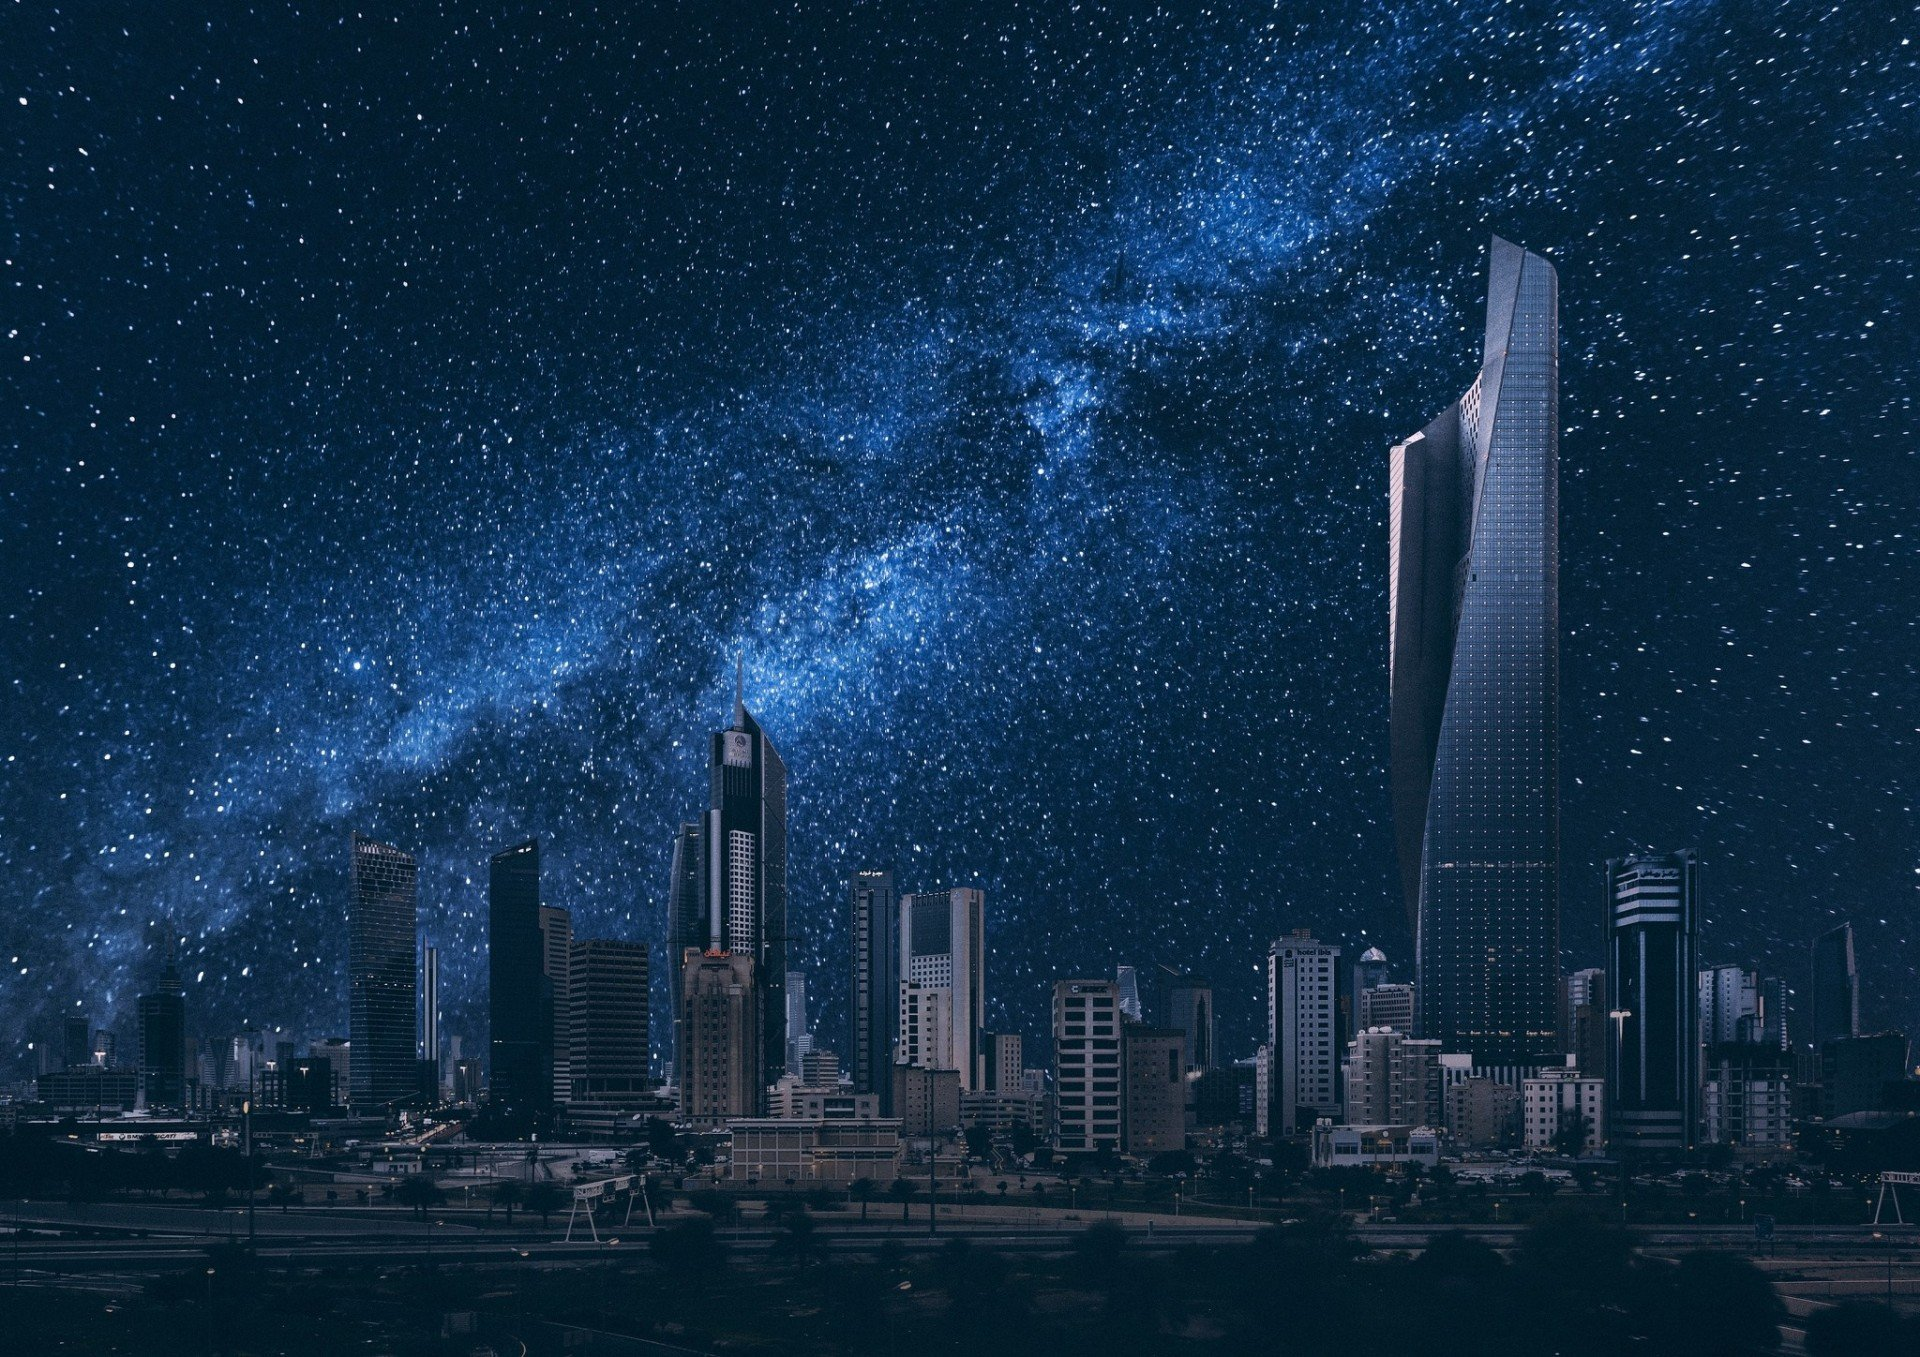 Kuwait City Wallpapers and Background Images   stmednet 1920x1357